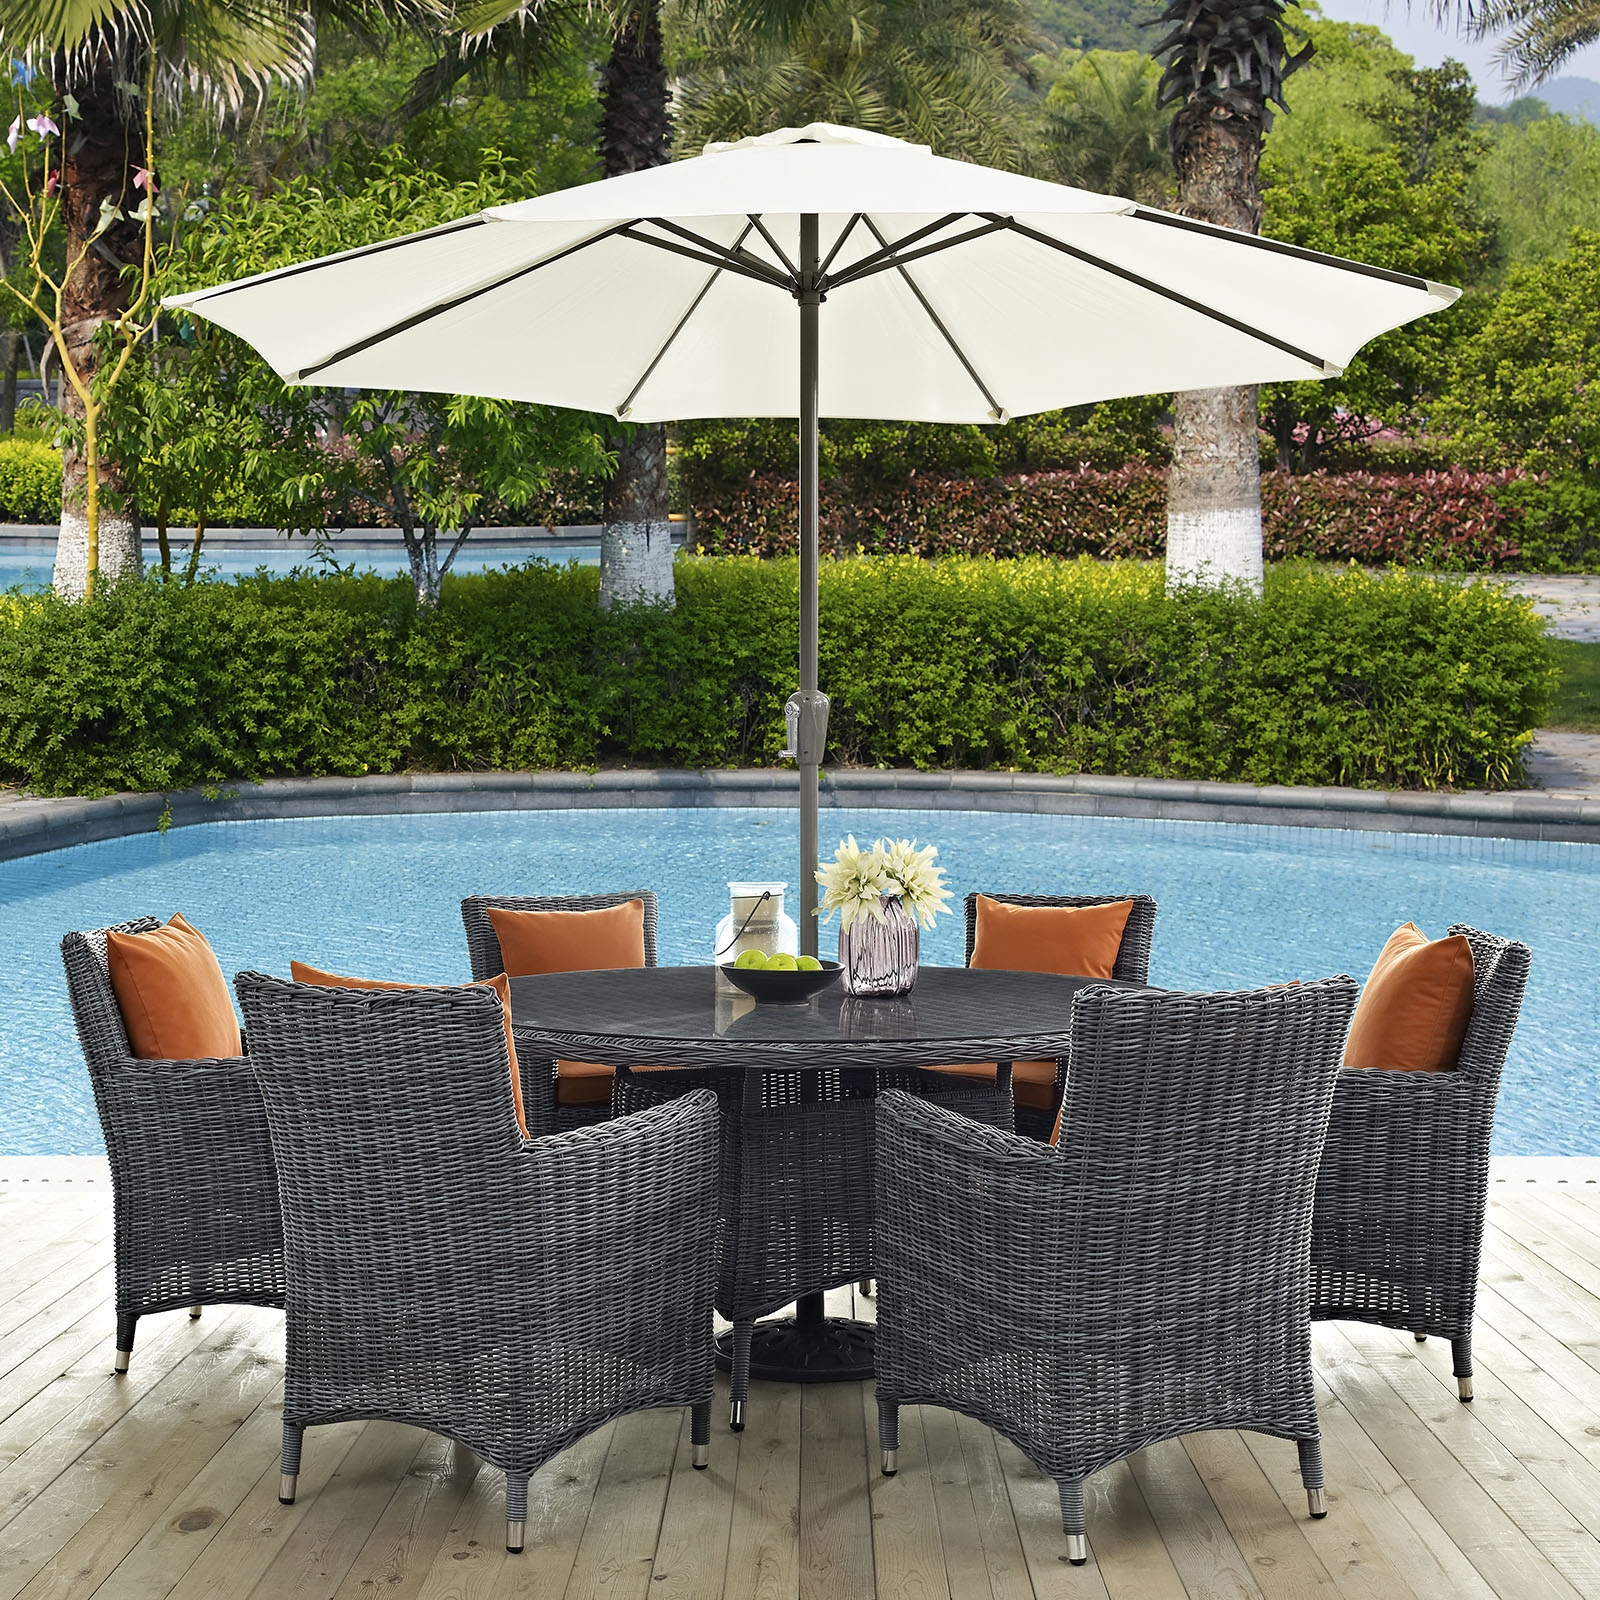 Summon 8 Piece Outdoor Patio Sunbrella® Dining Set in Canvas Tuscan